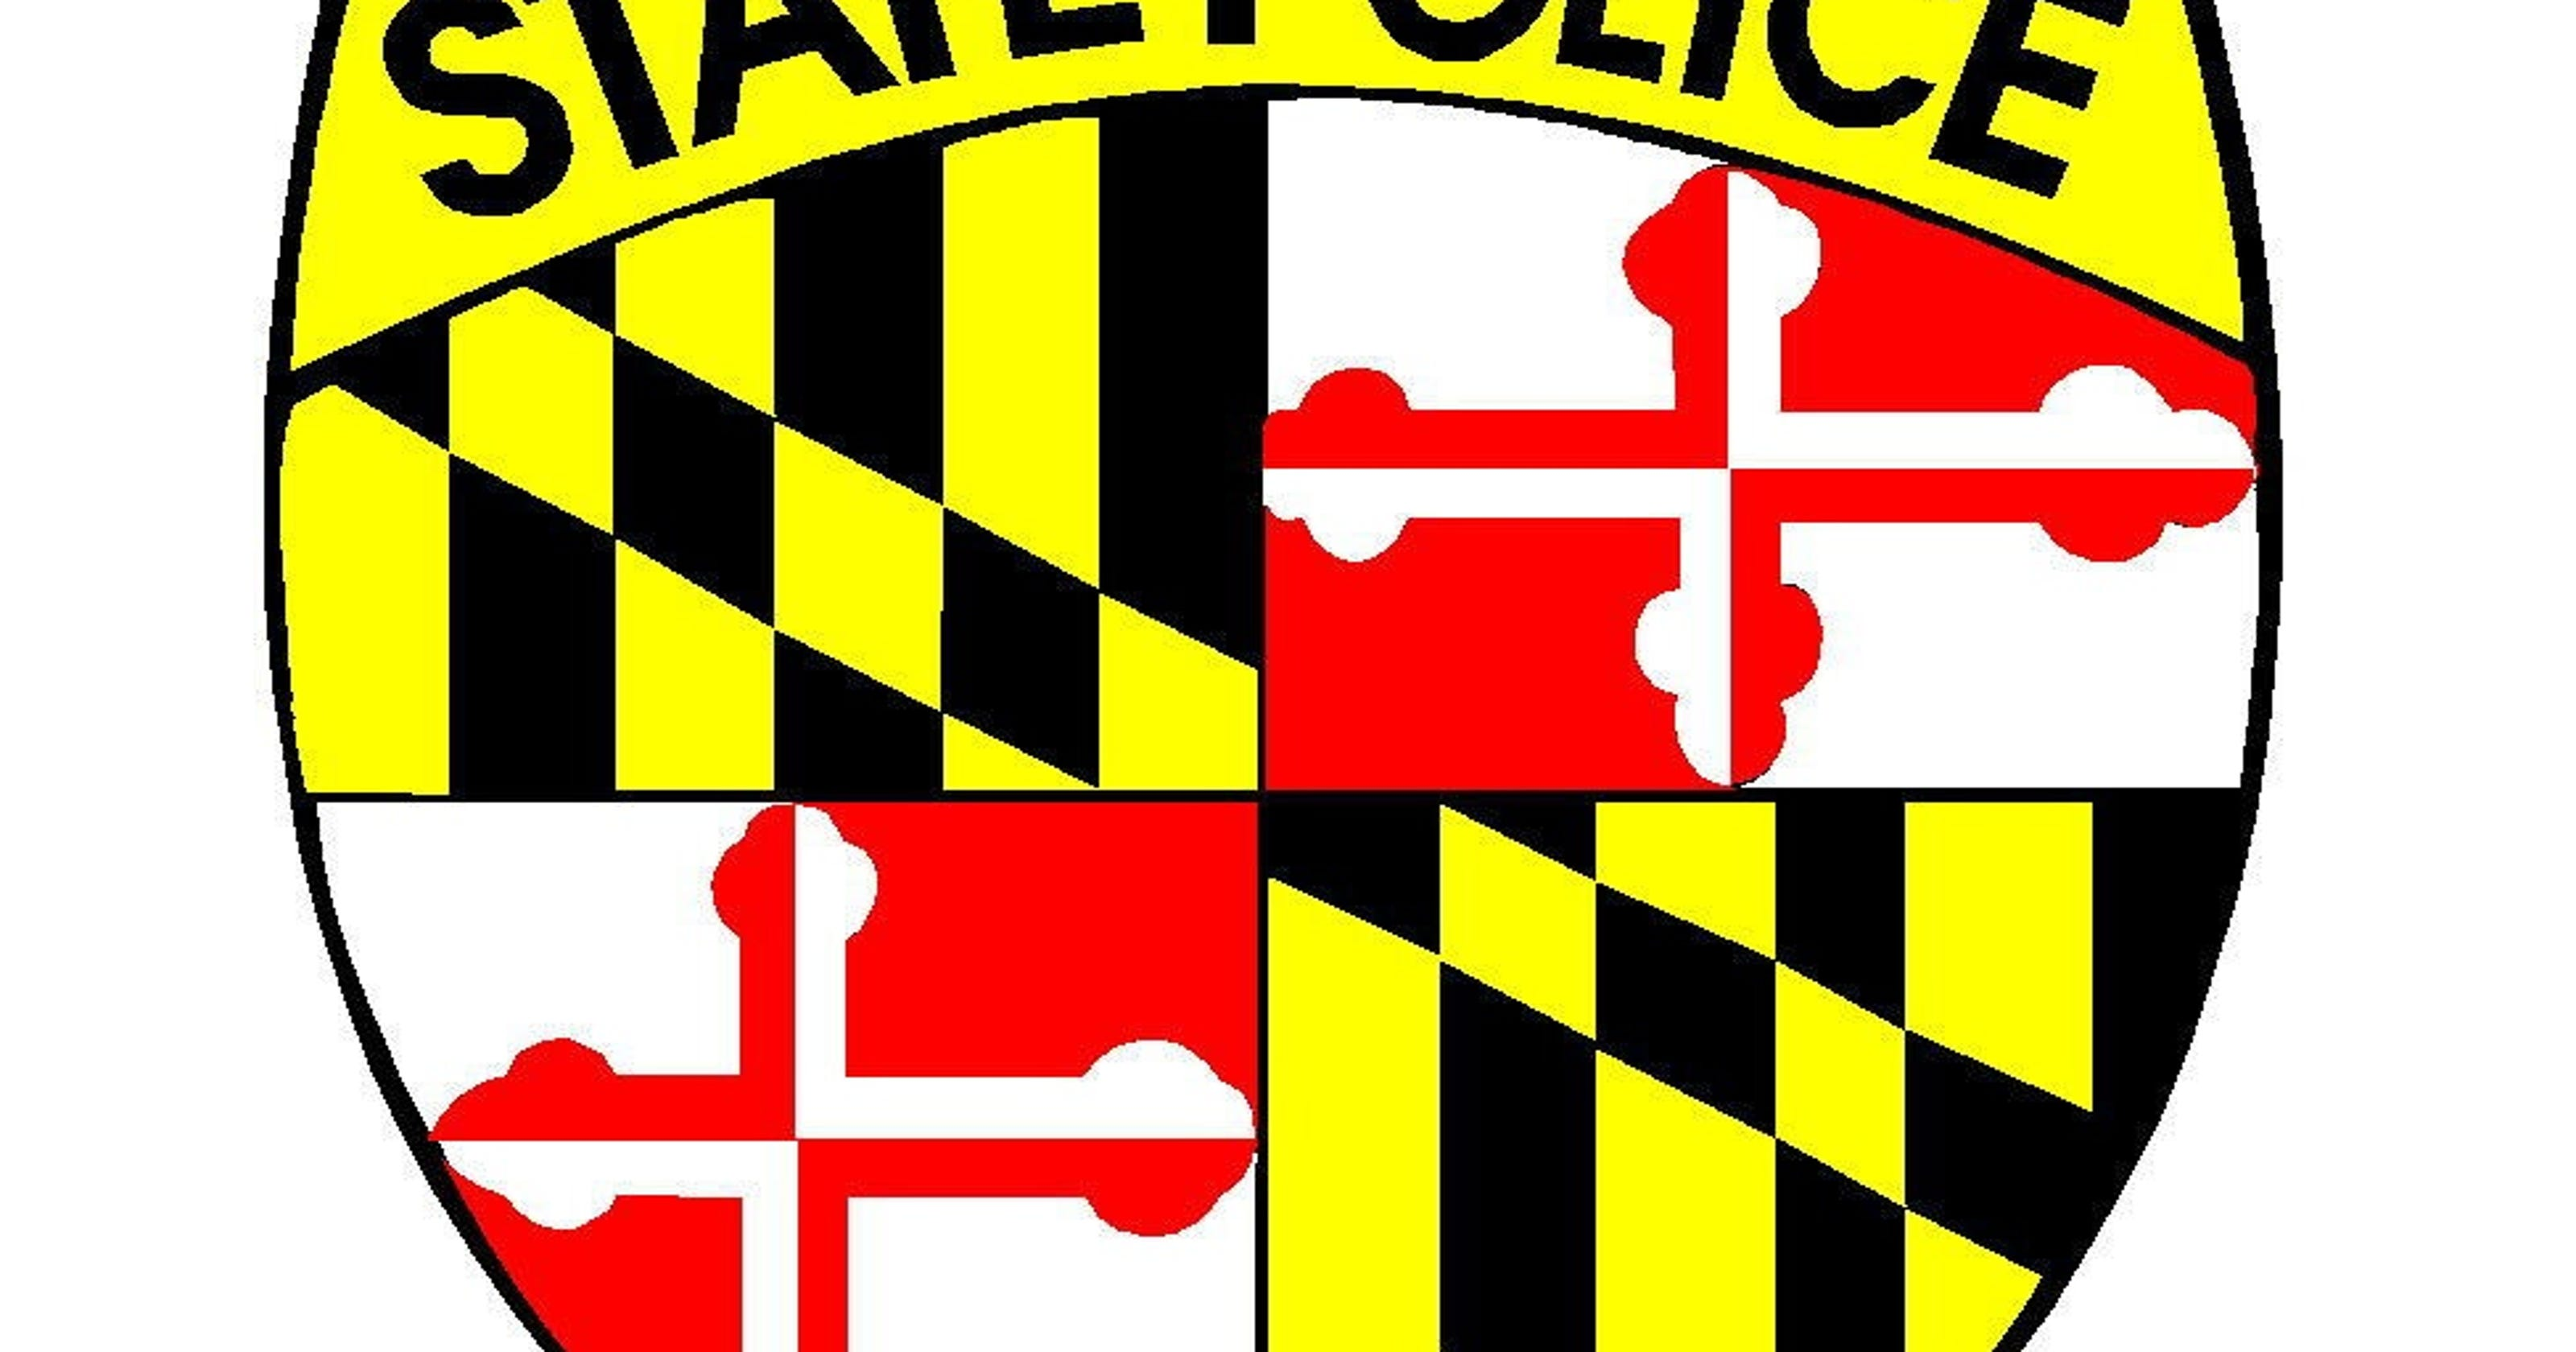 Troopers investigated over Route 50 conduct allegations